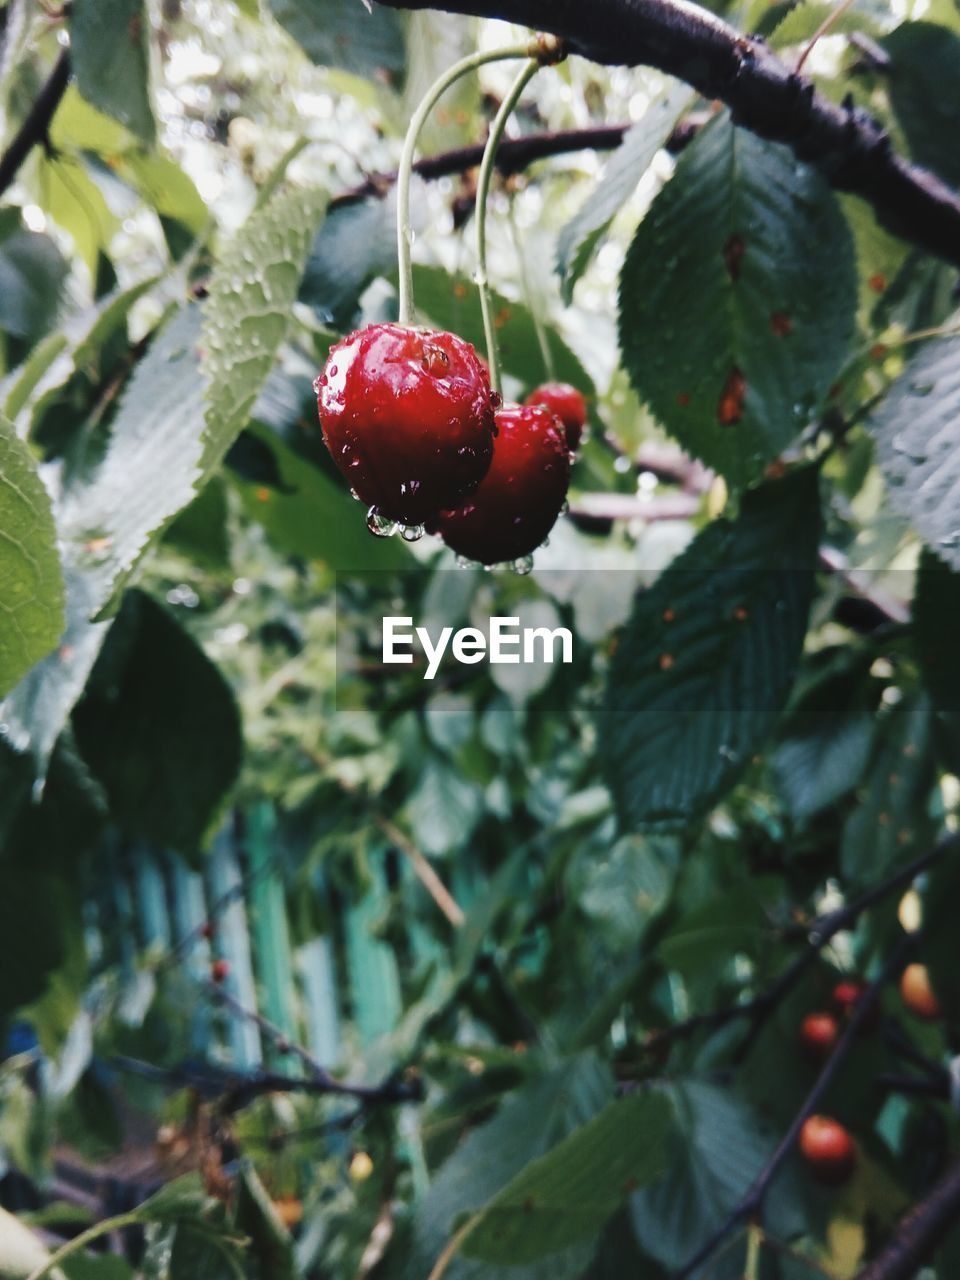 fruit, red, growth, berry fruit, food and drink, nature, leaf, freshness, tree, beauty in nature, outdoors, rose hip, focus on foreground, no people, day, green color, food, healthy eating, plant, close-up, rowanberry, branch